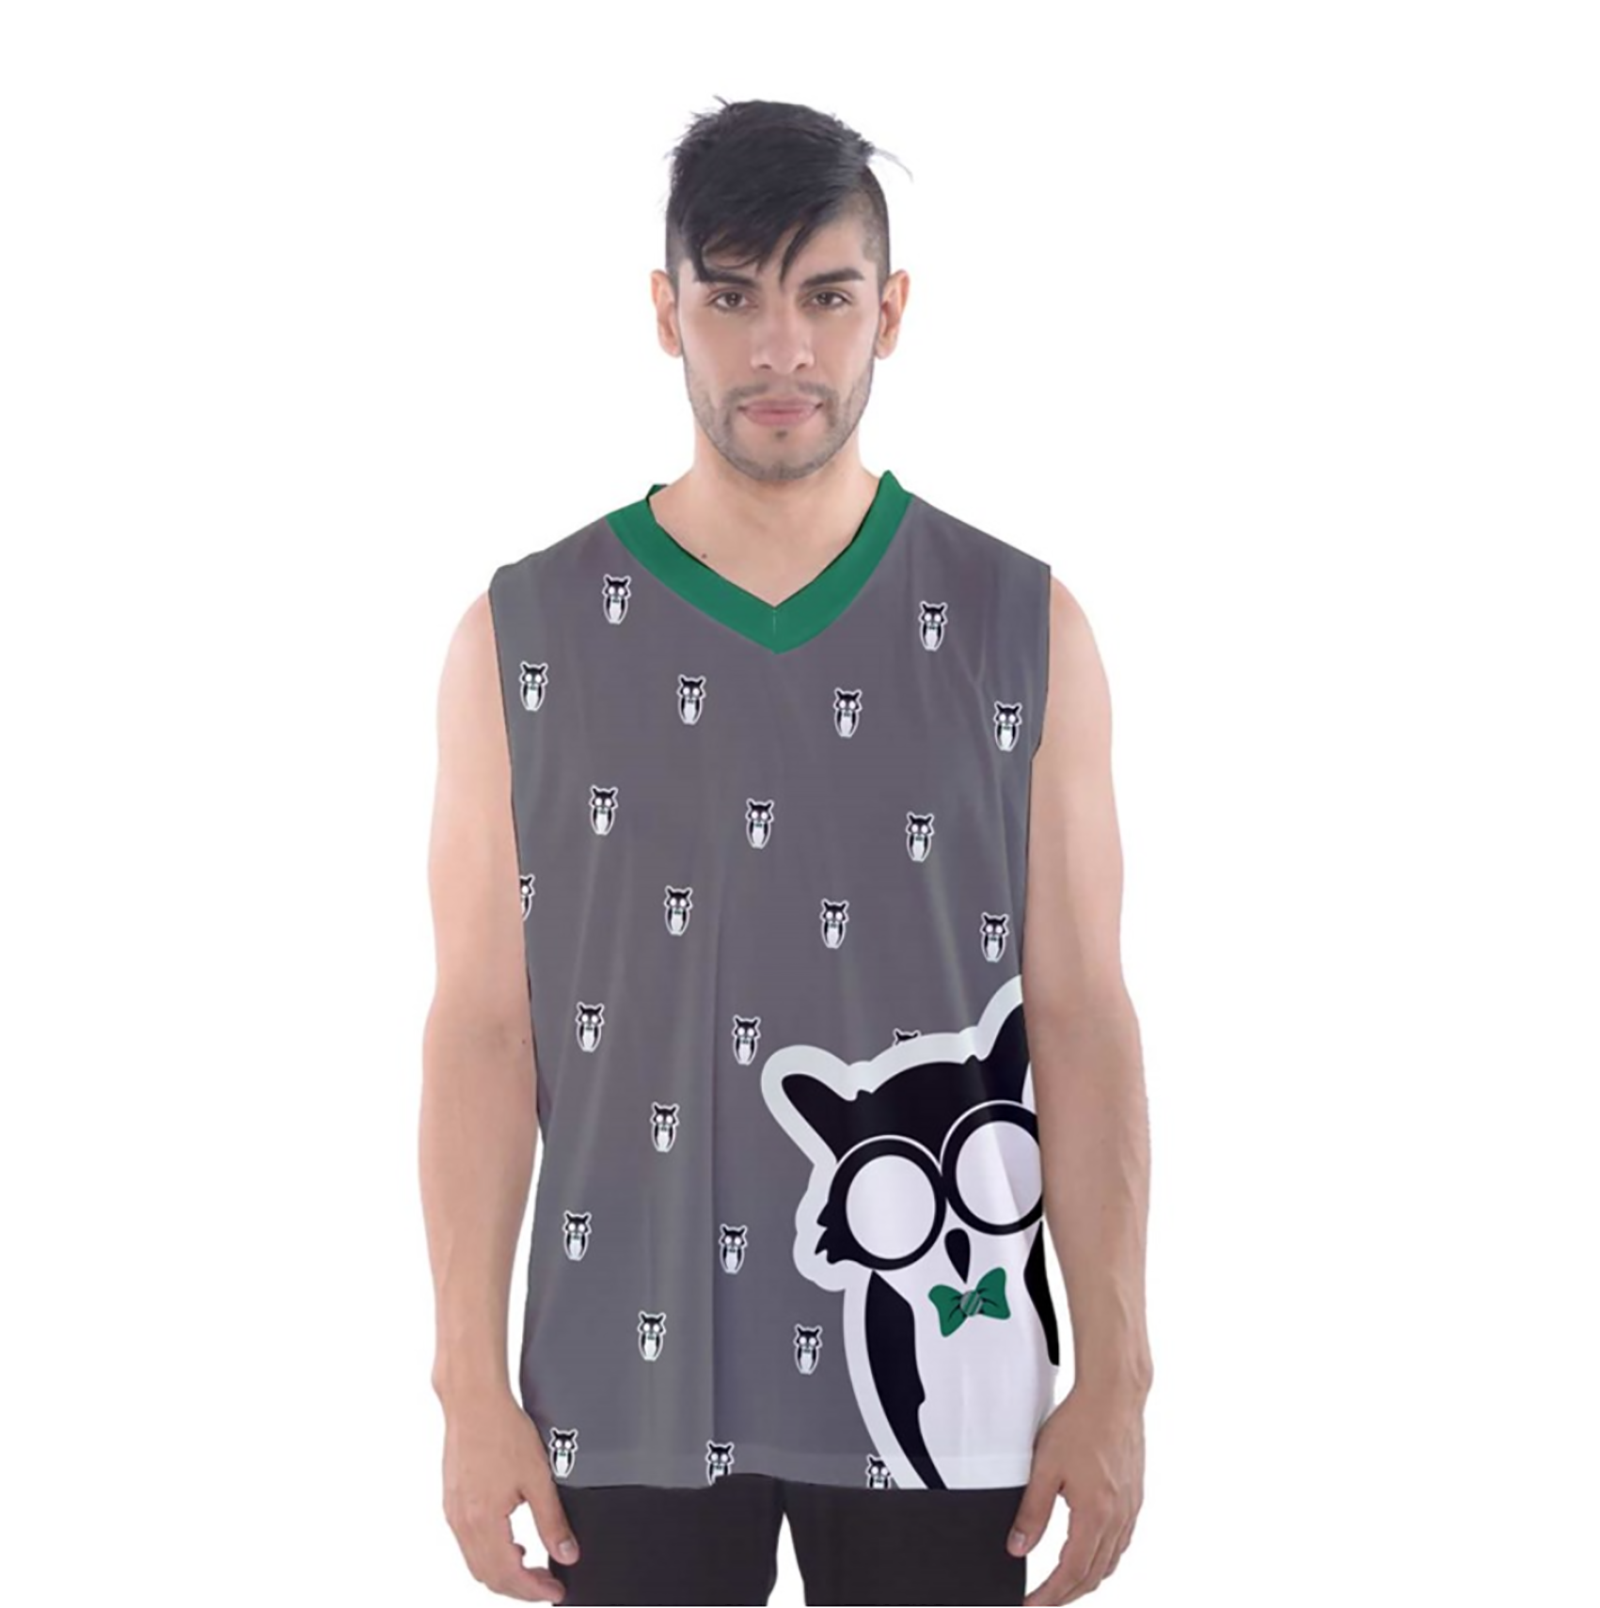 Green/Gray Owl Men's Tank Top - Inspired by Slytherin